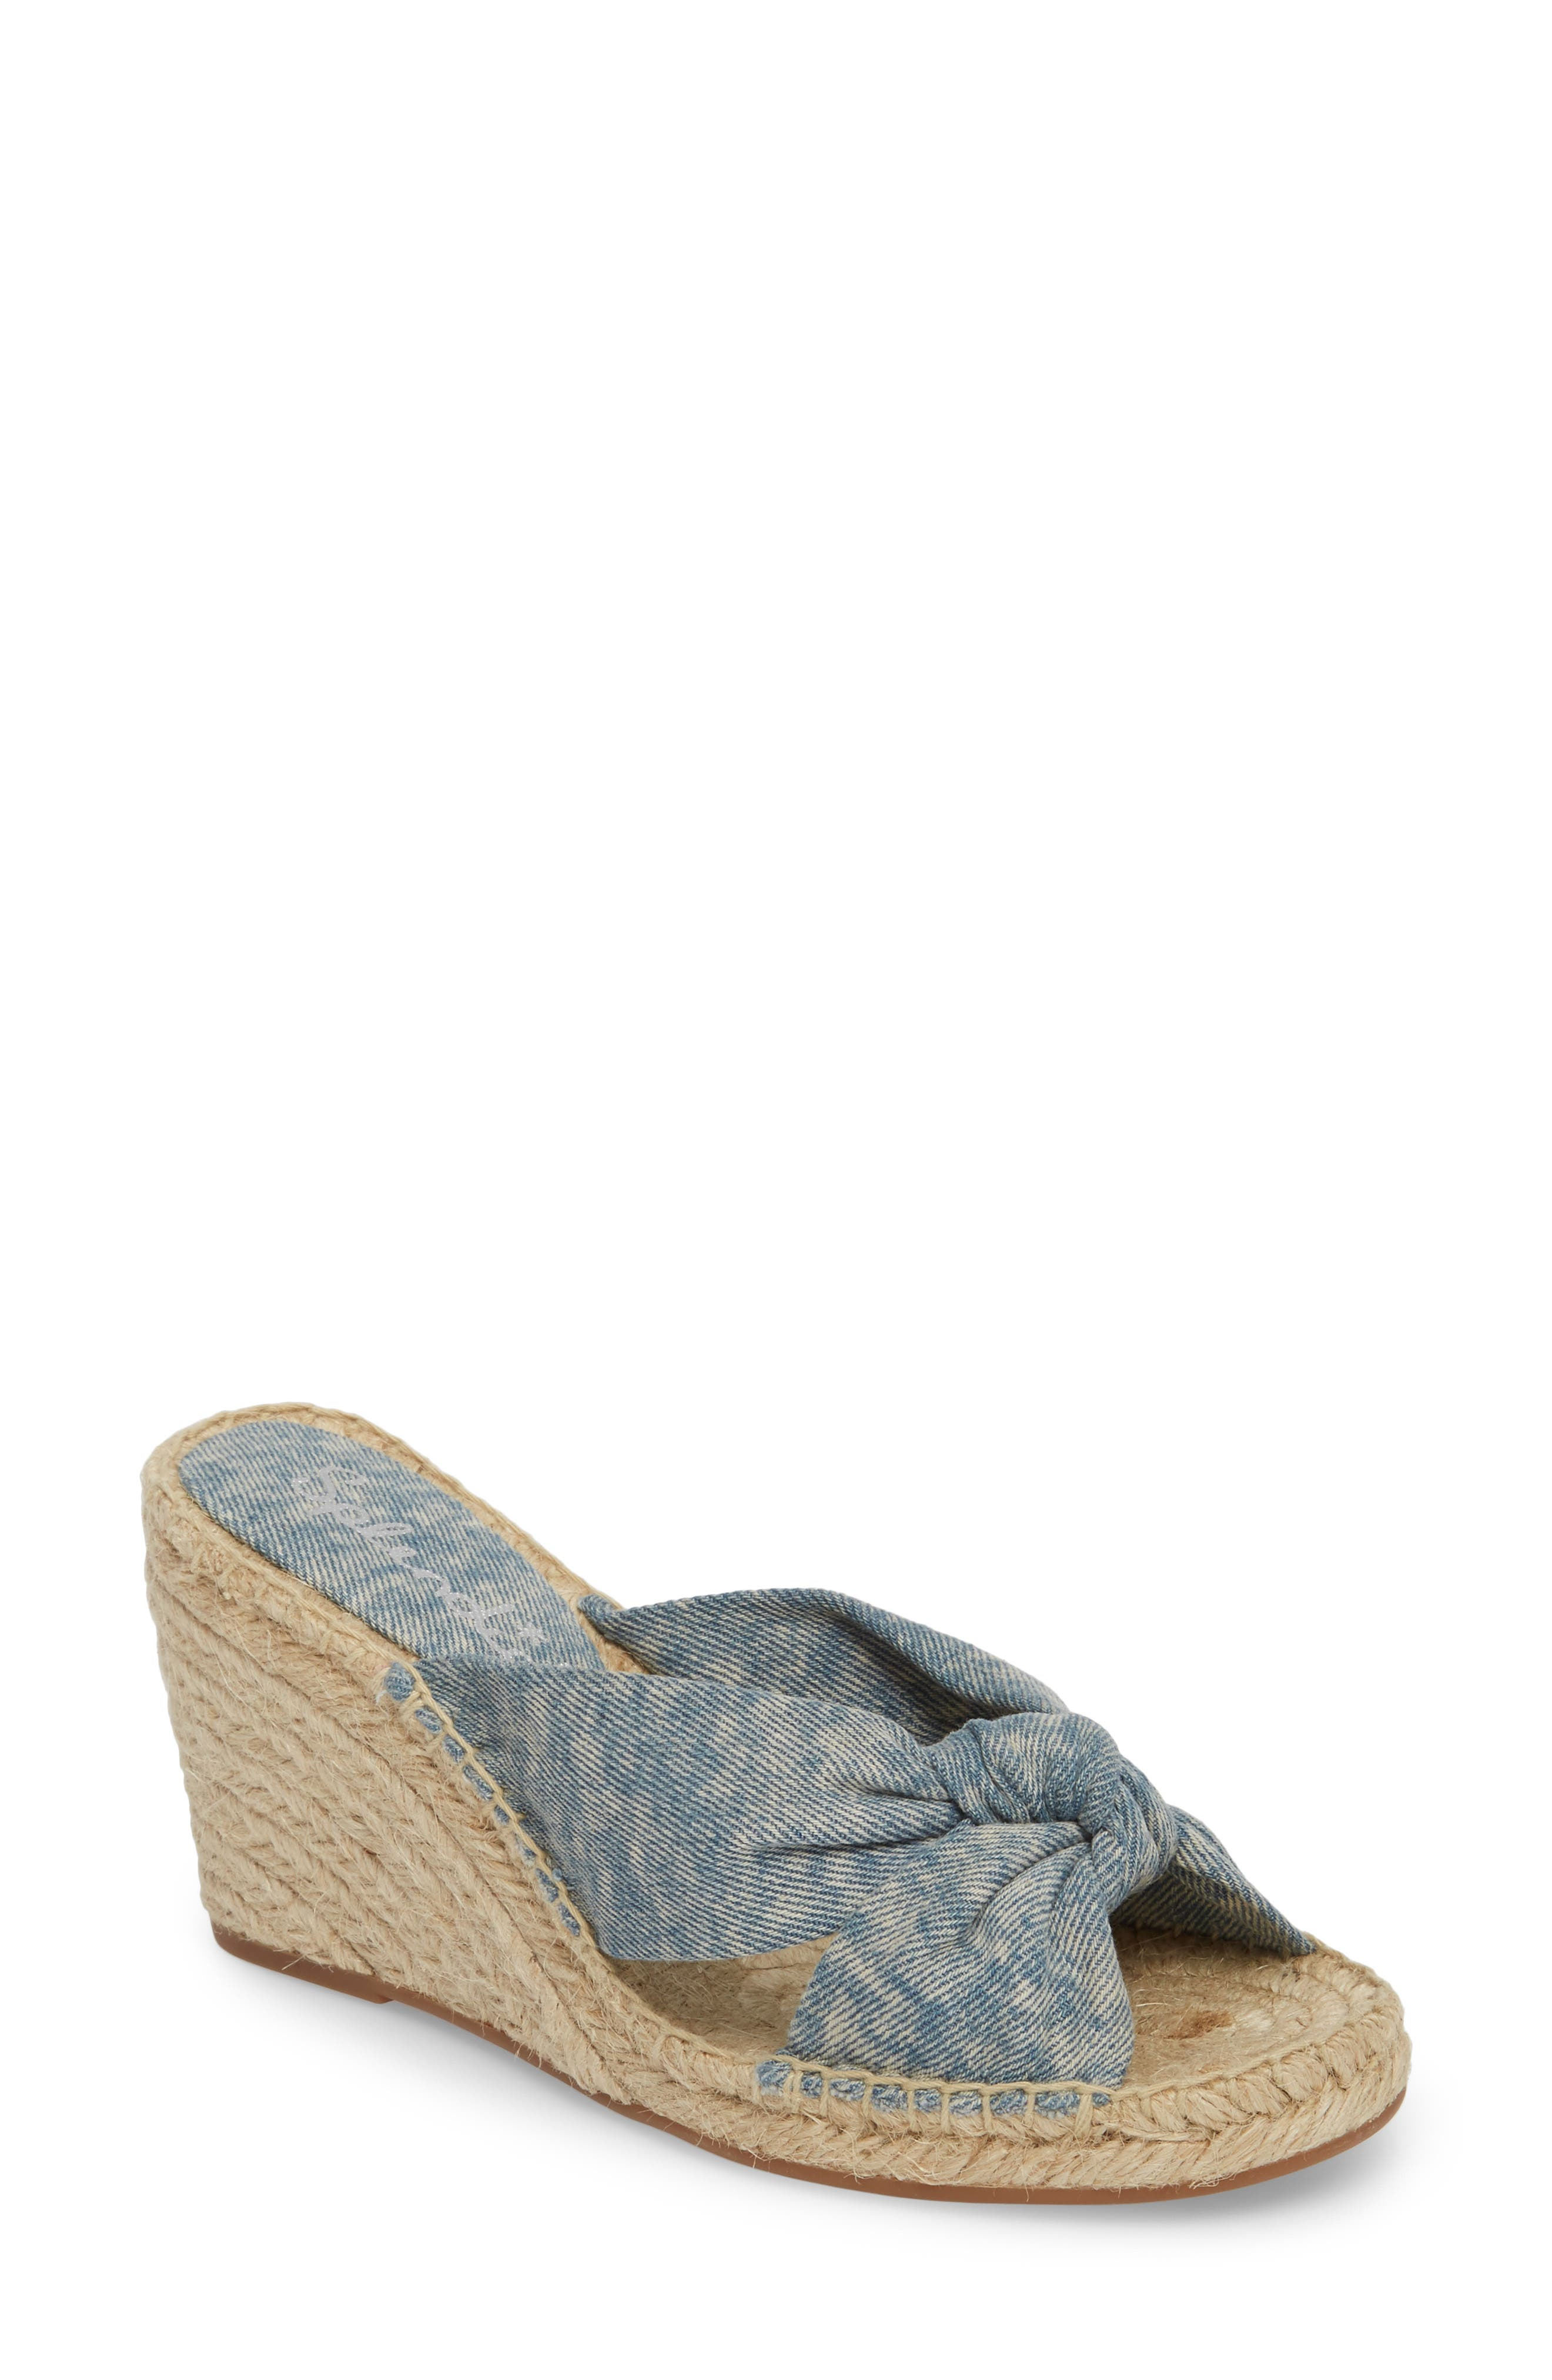 Main Image - Splendid Bautista Knotted Wedge Sandal (Women)